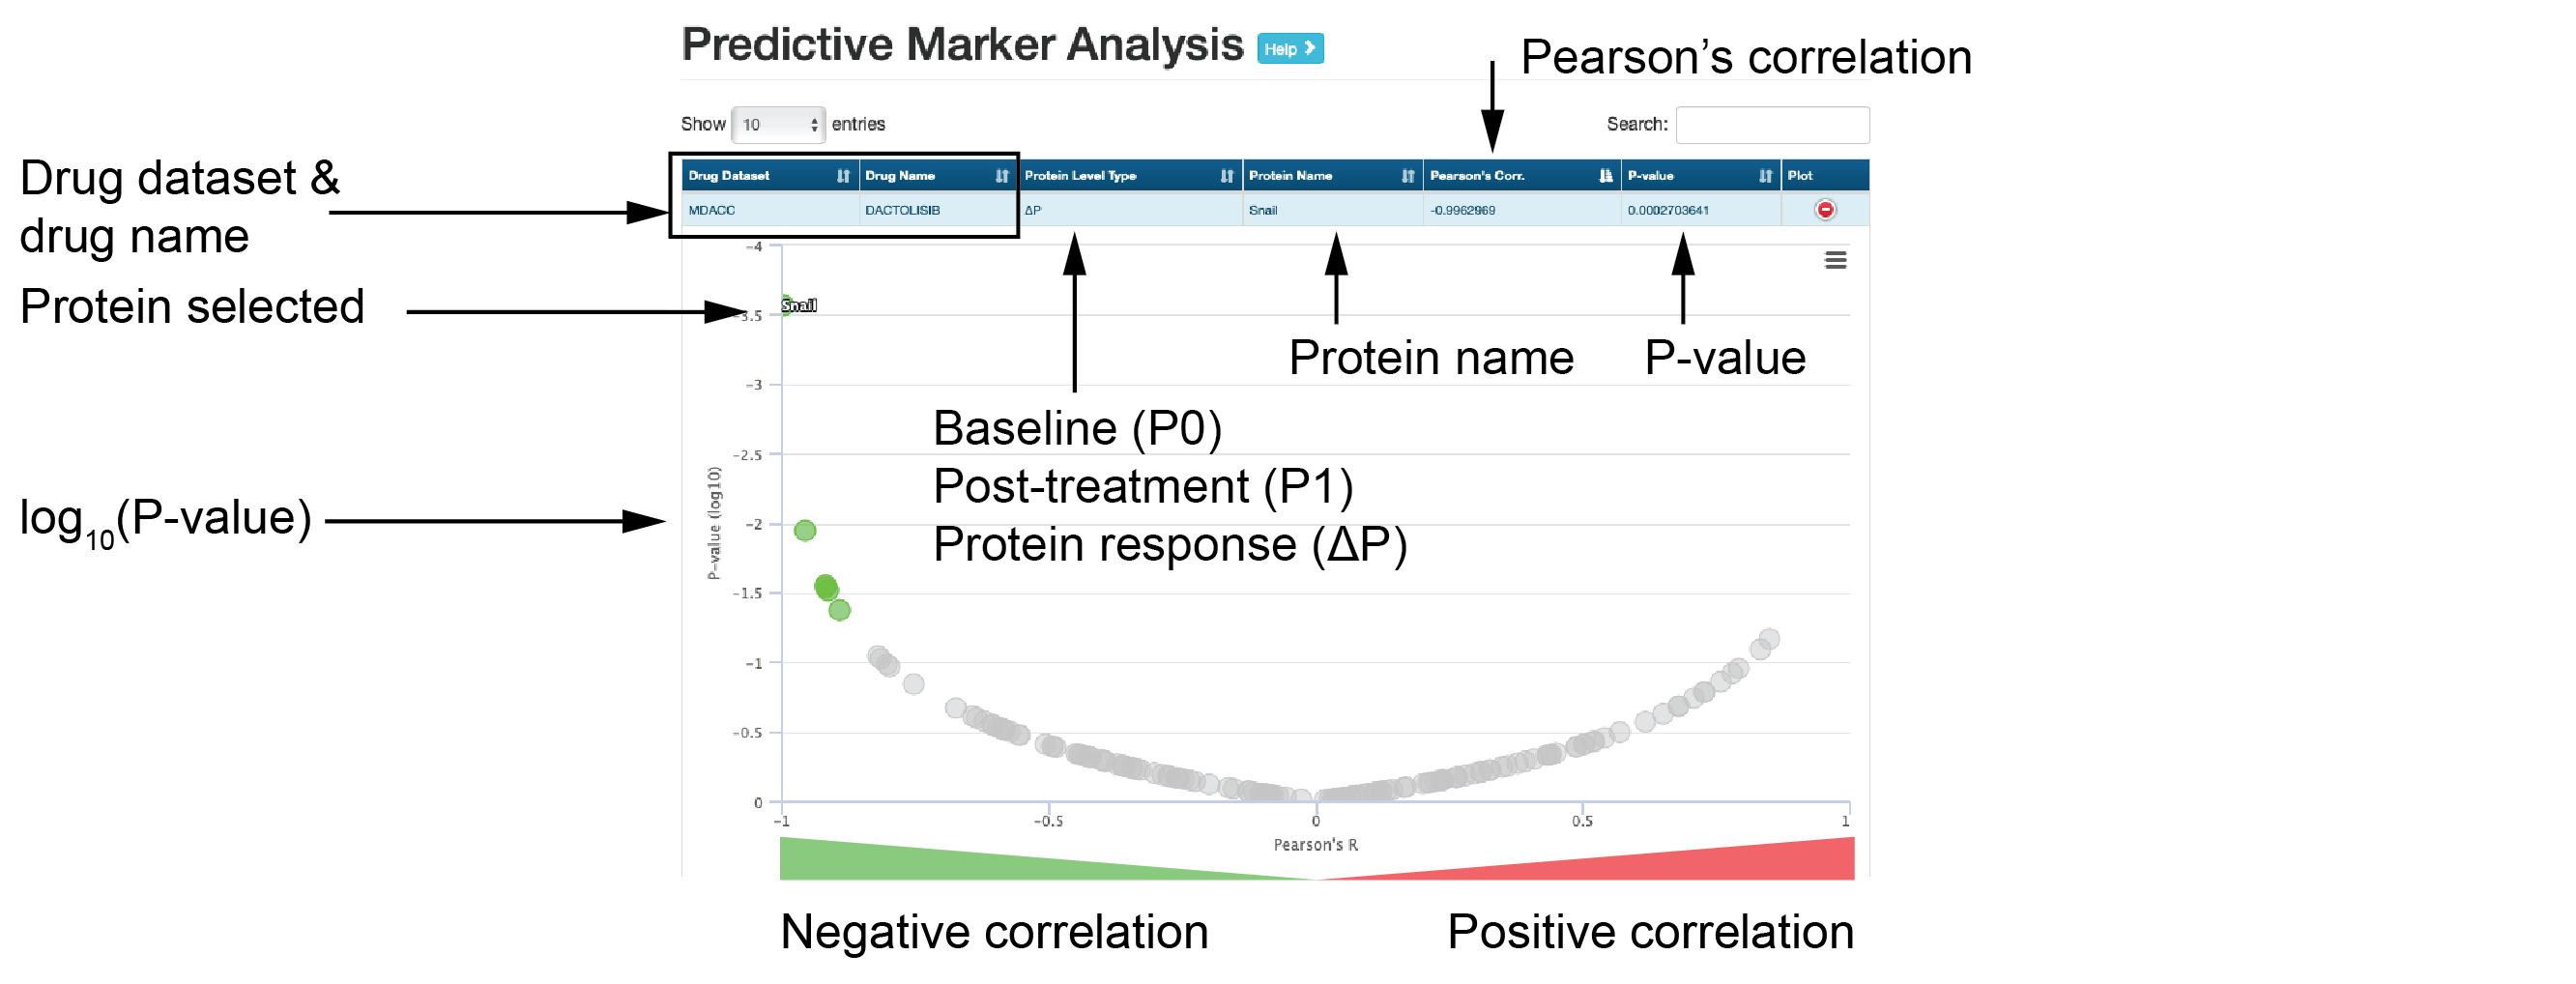 An example of predictive marker analysis